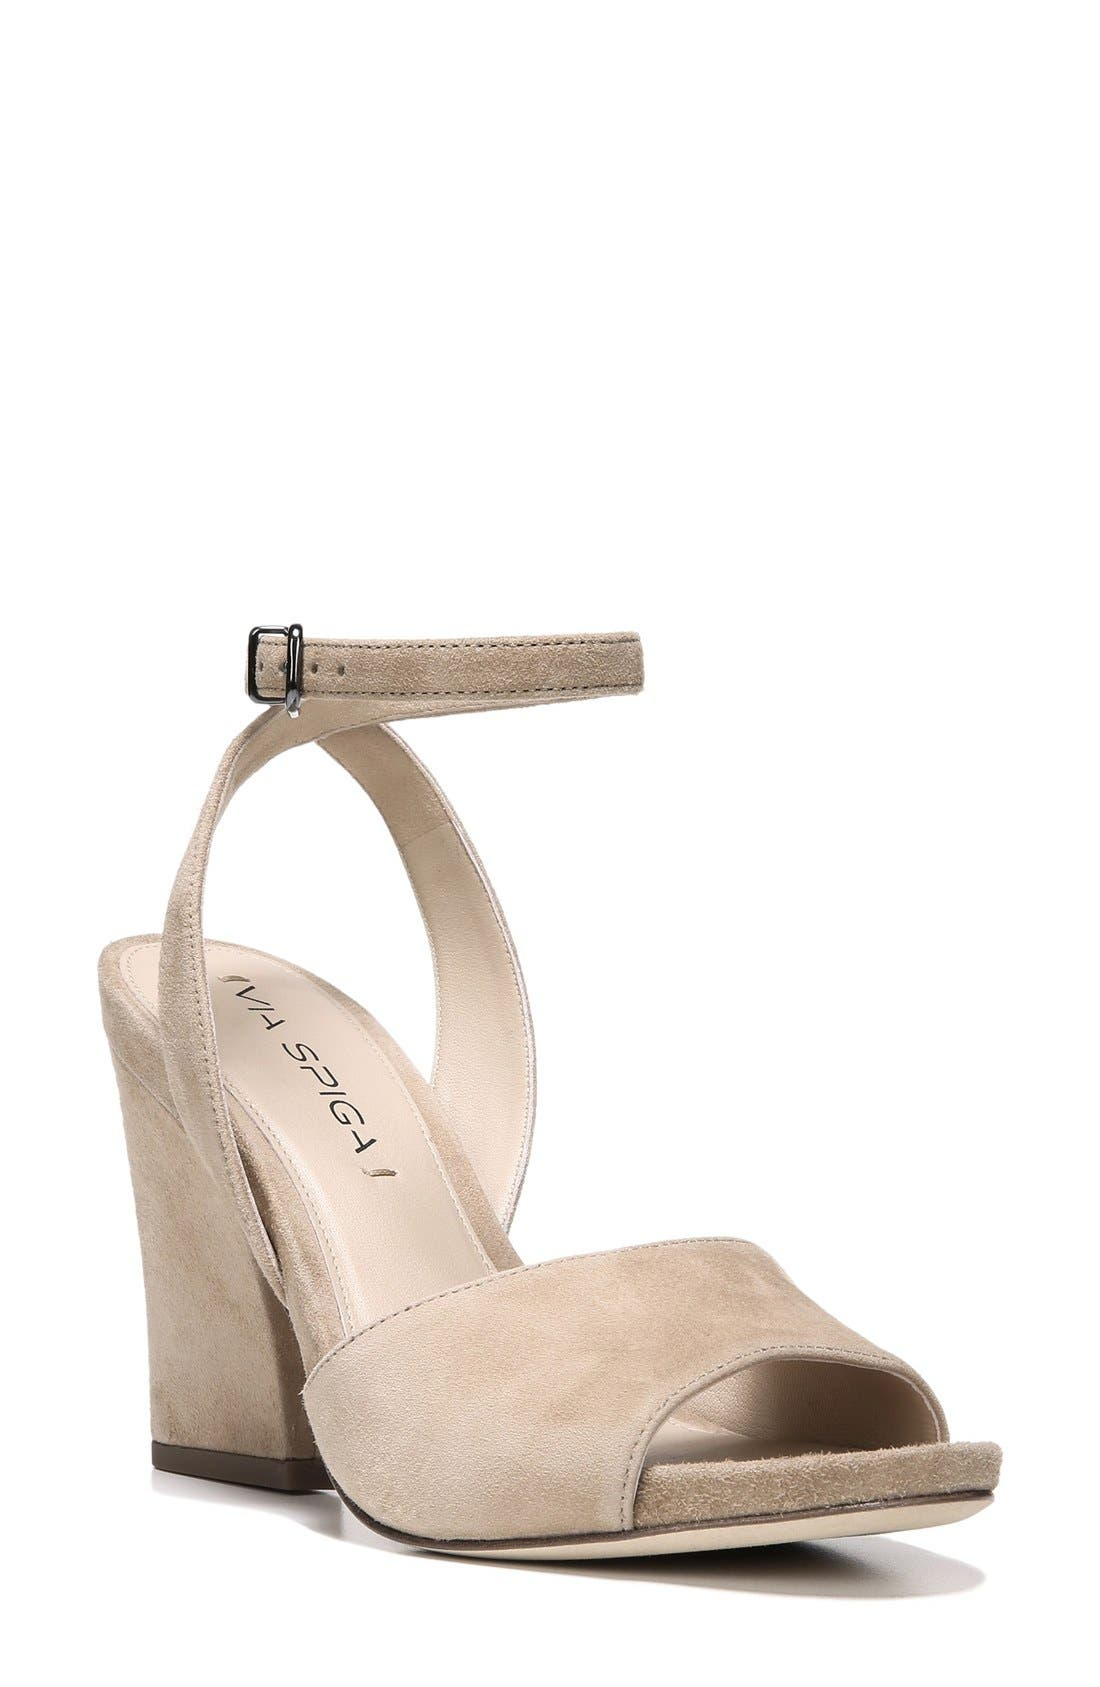 'Piper' Ankle Strap Sandal,                         Main,                         color, Light Camel Suede